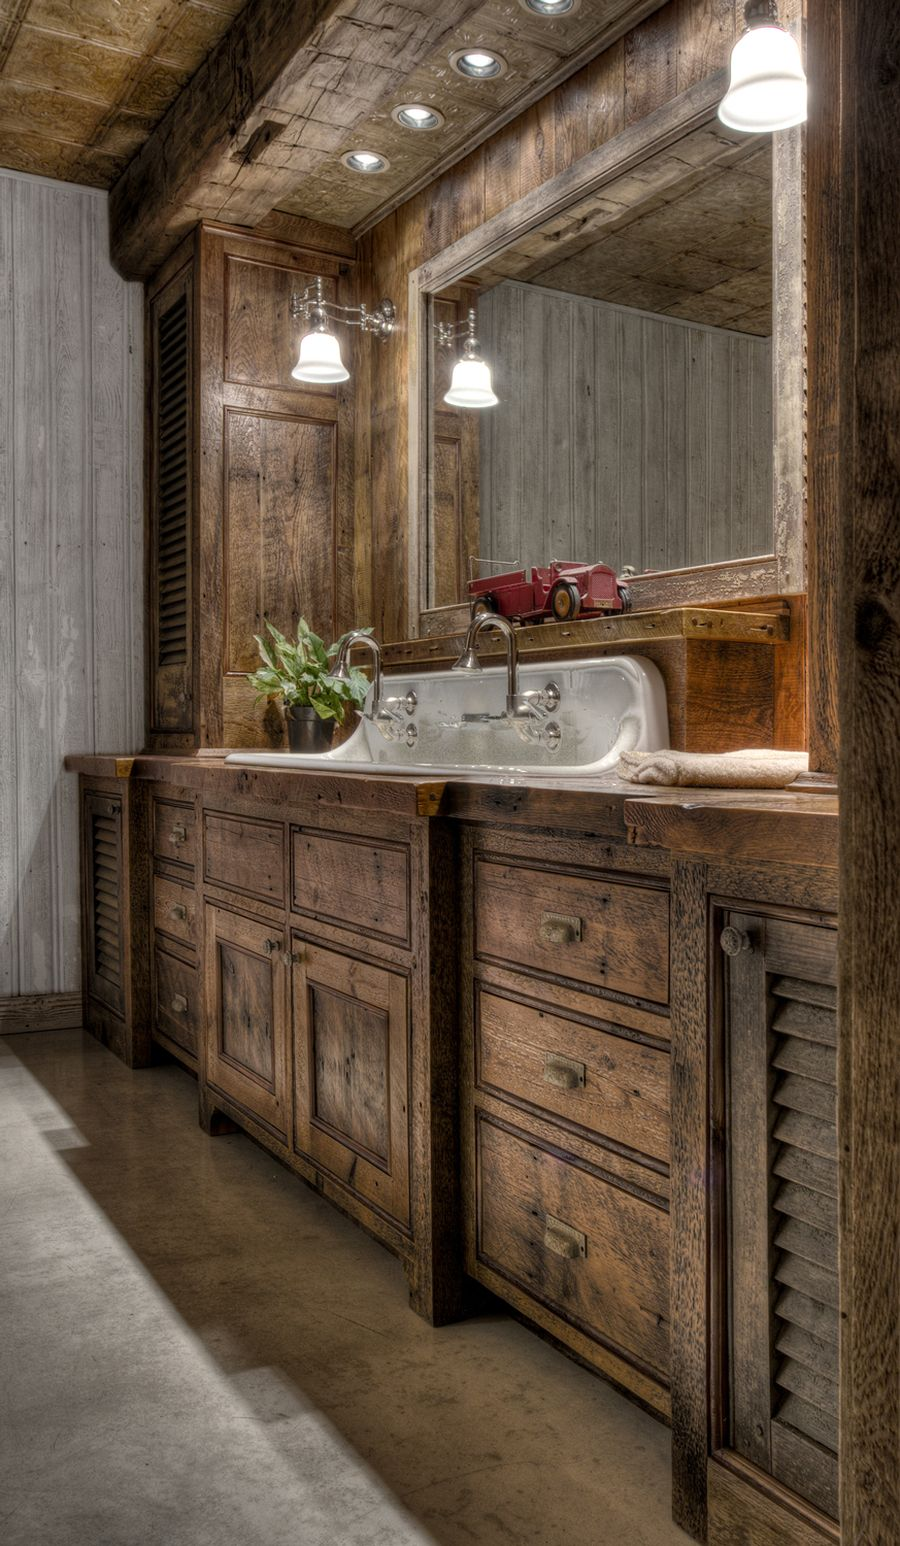 Rustic farmhouse style bathroom design ideas 58 - Hoommy.com on Farmhouse Bathroom Ideas  id=20177